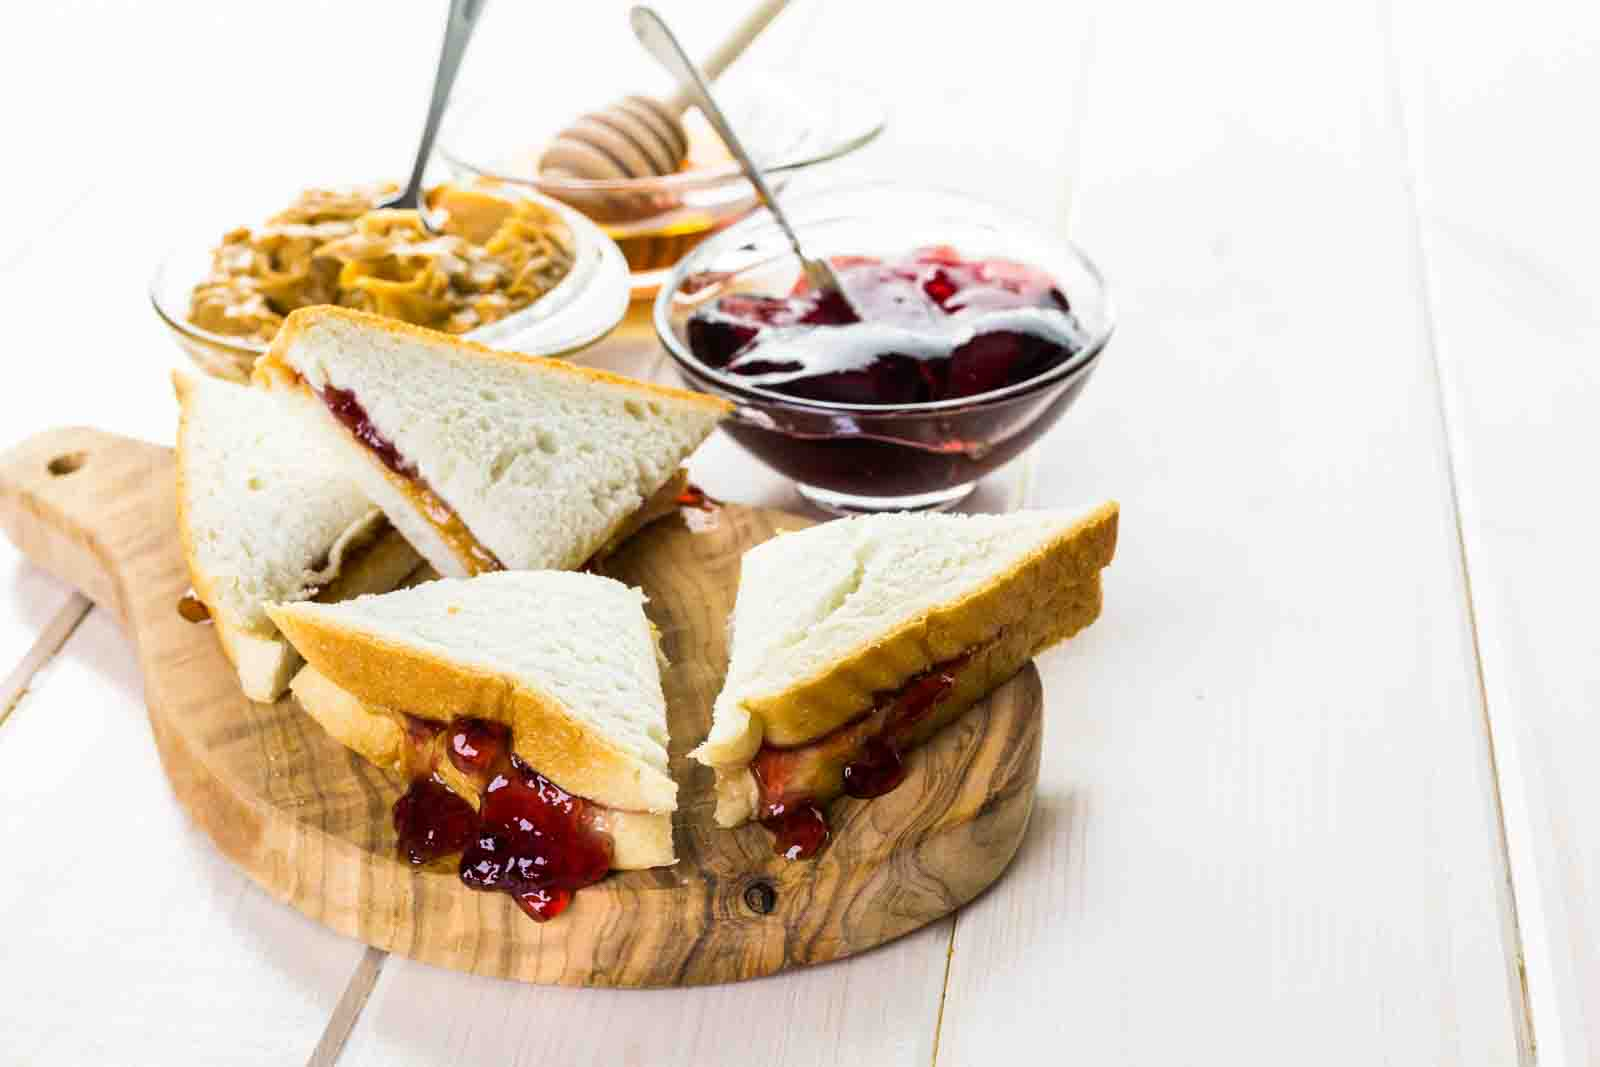 Pbj For Adults Gourmet Peanut Butter And Jelly Sandwich